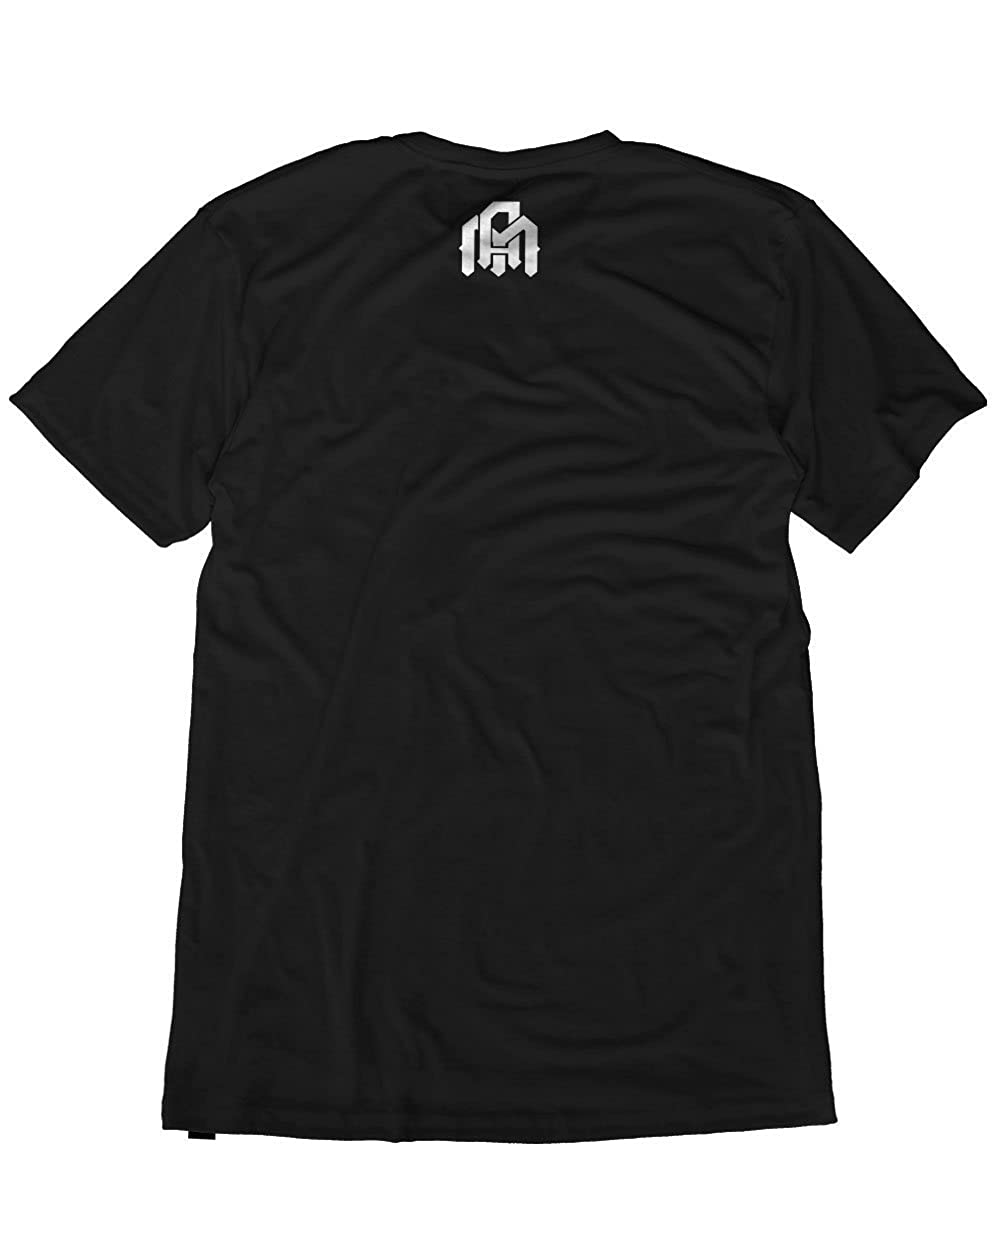 INTO THE AM Mens Casual Short Sleeve Graphic Tee Shirts